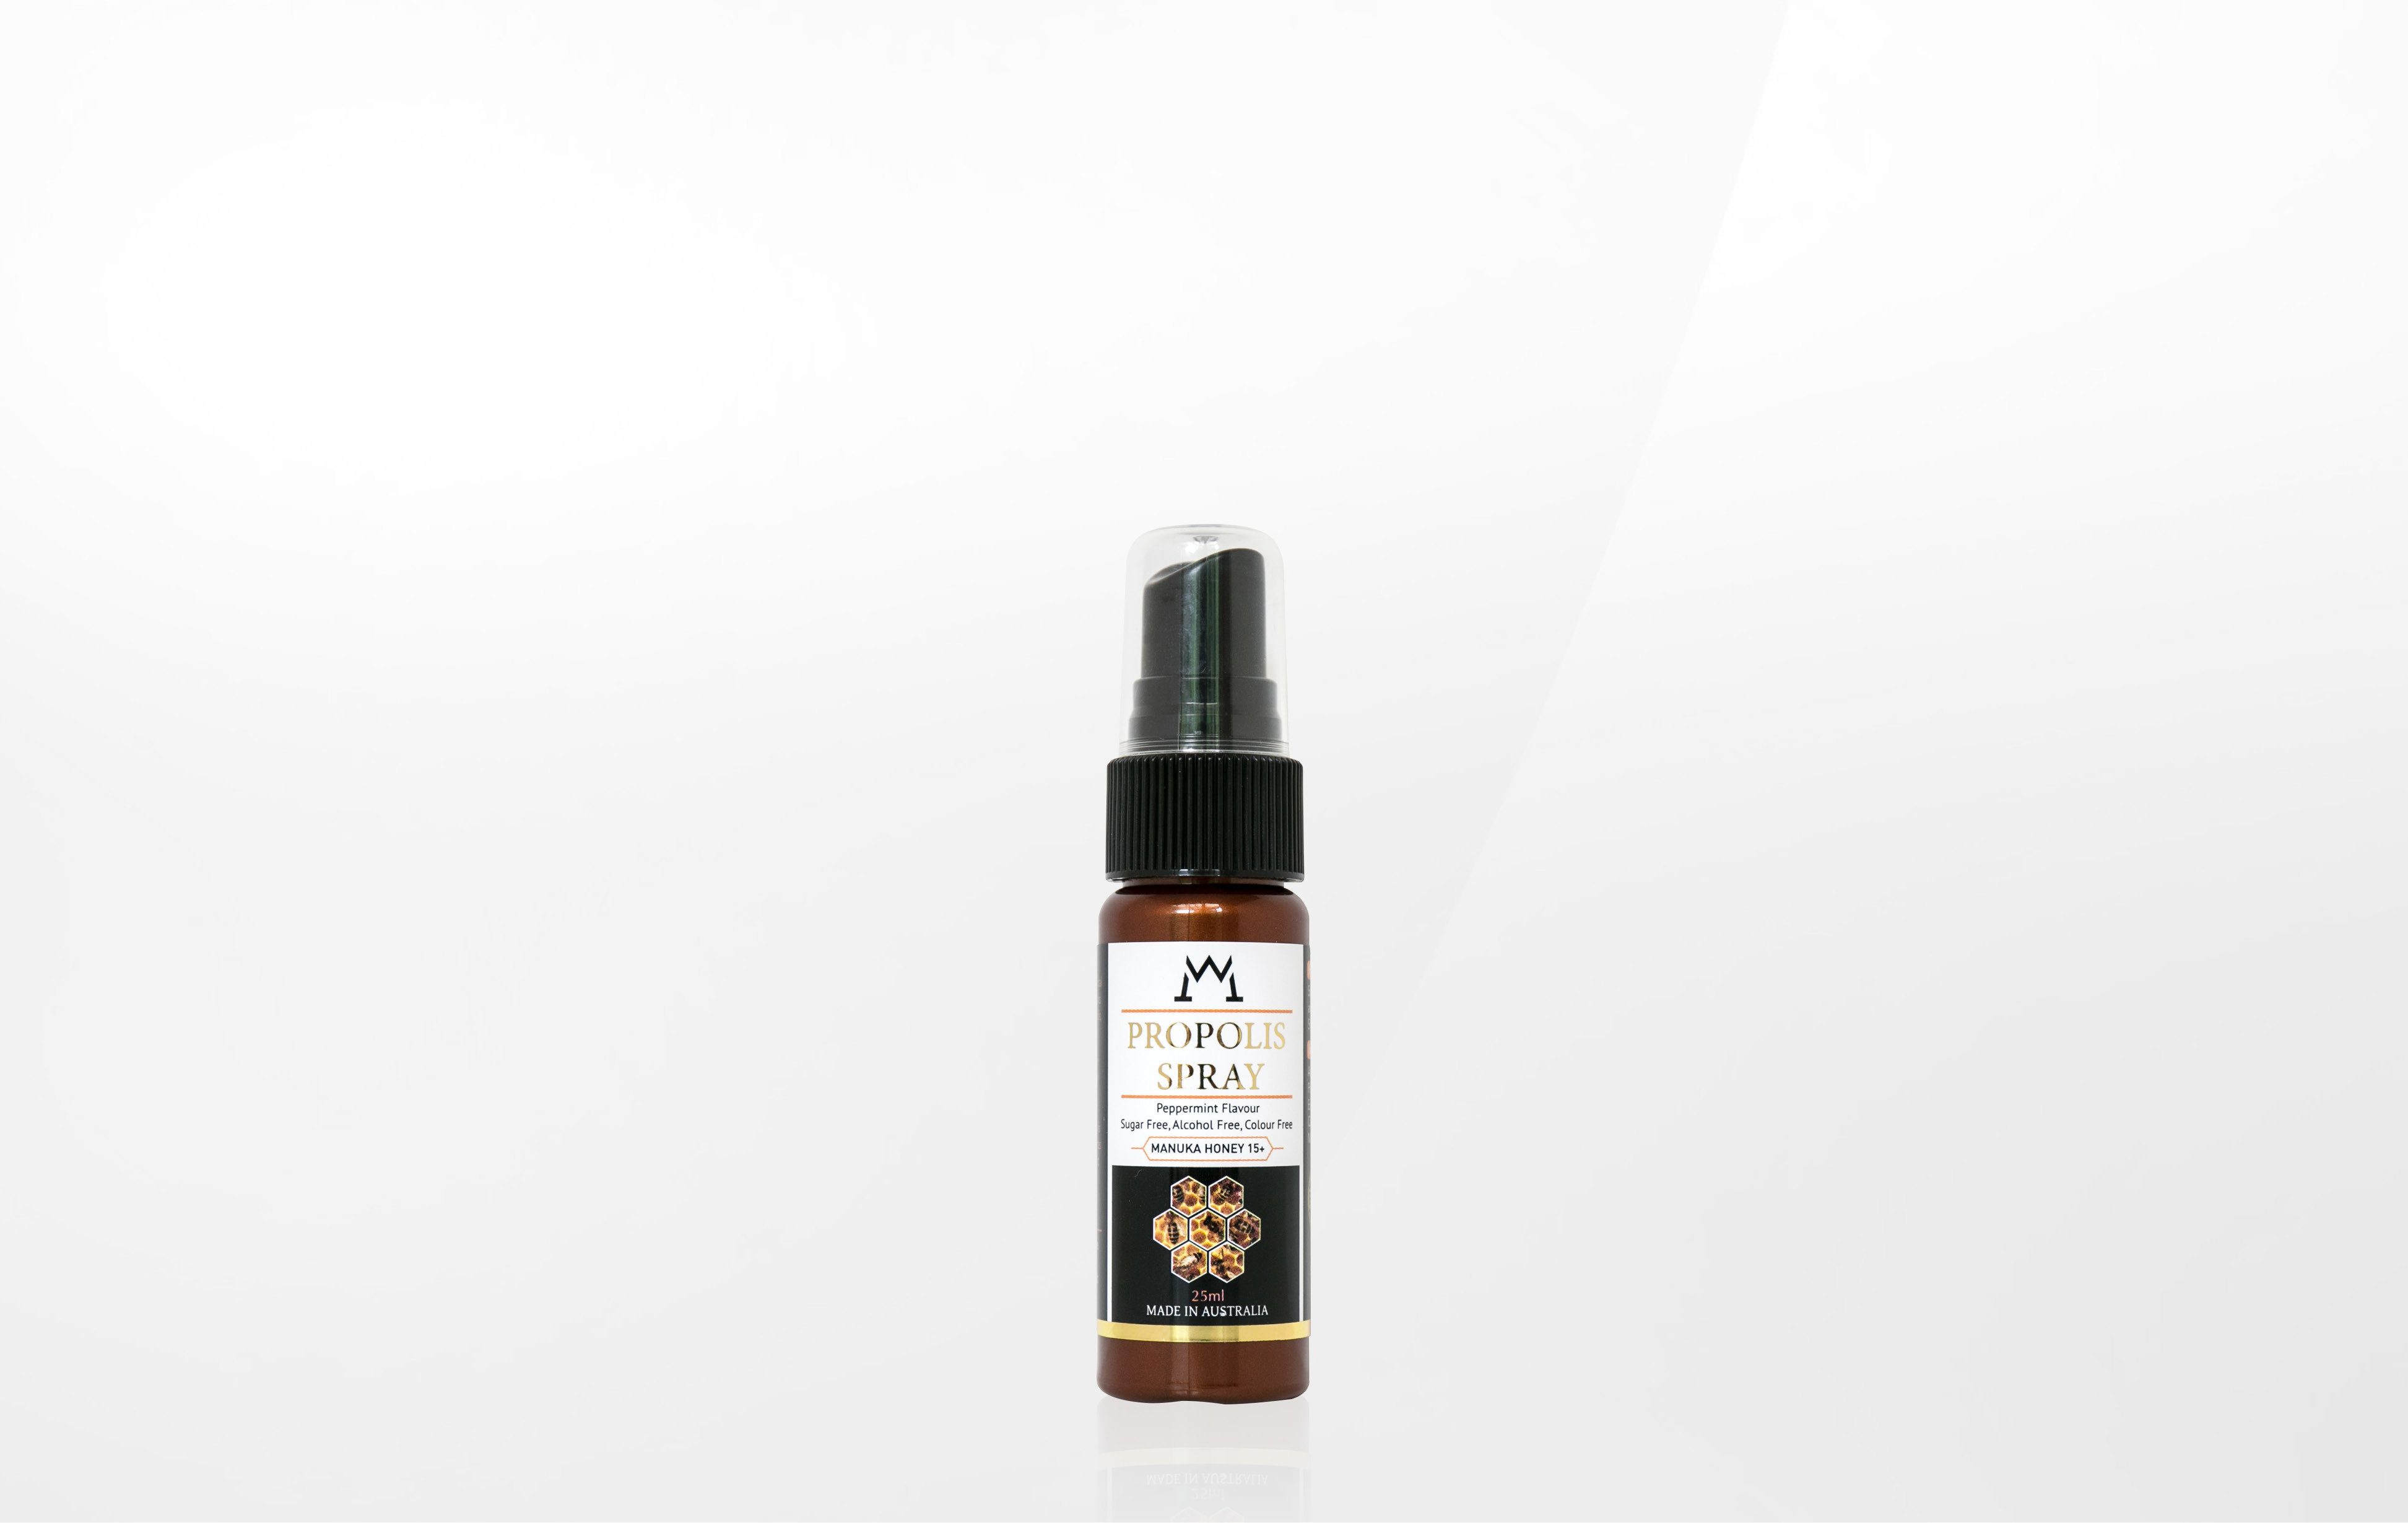 Propolis and Manuka honey 15 throat spray 006